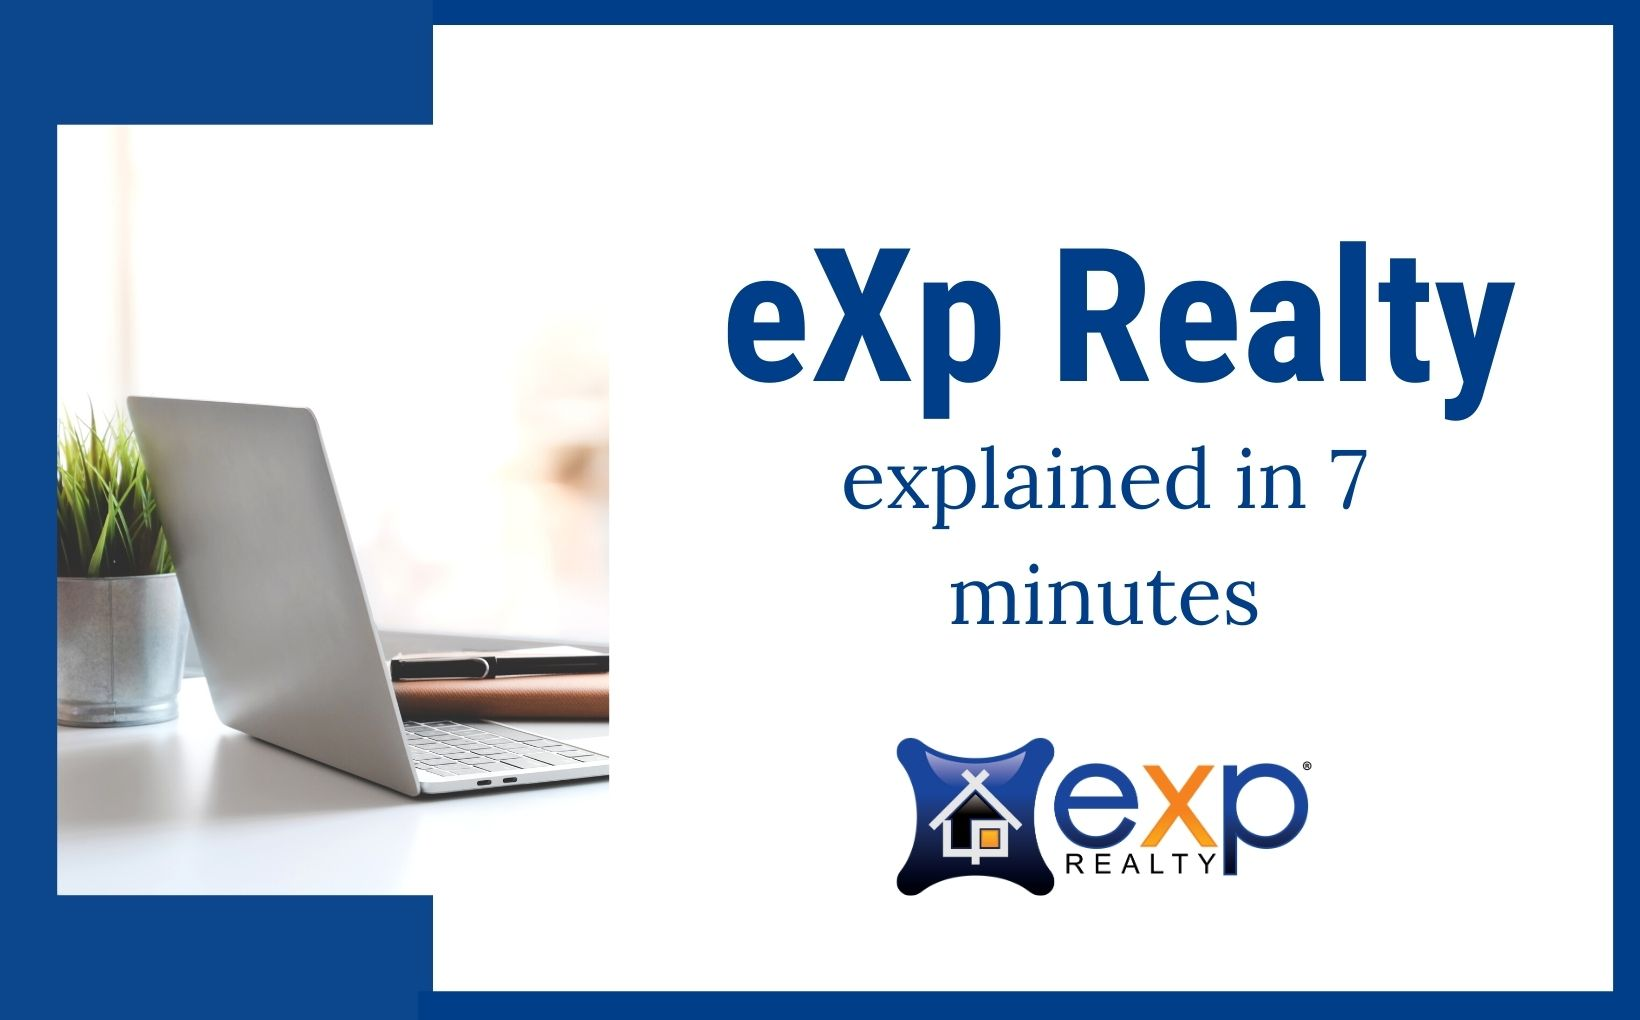 eXp Realty explained in 7 minutes 2 blog post